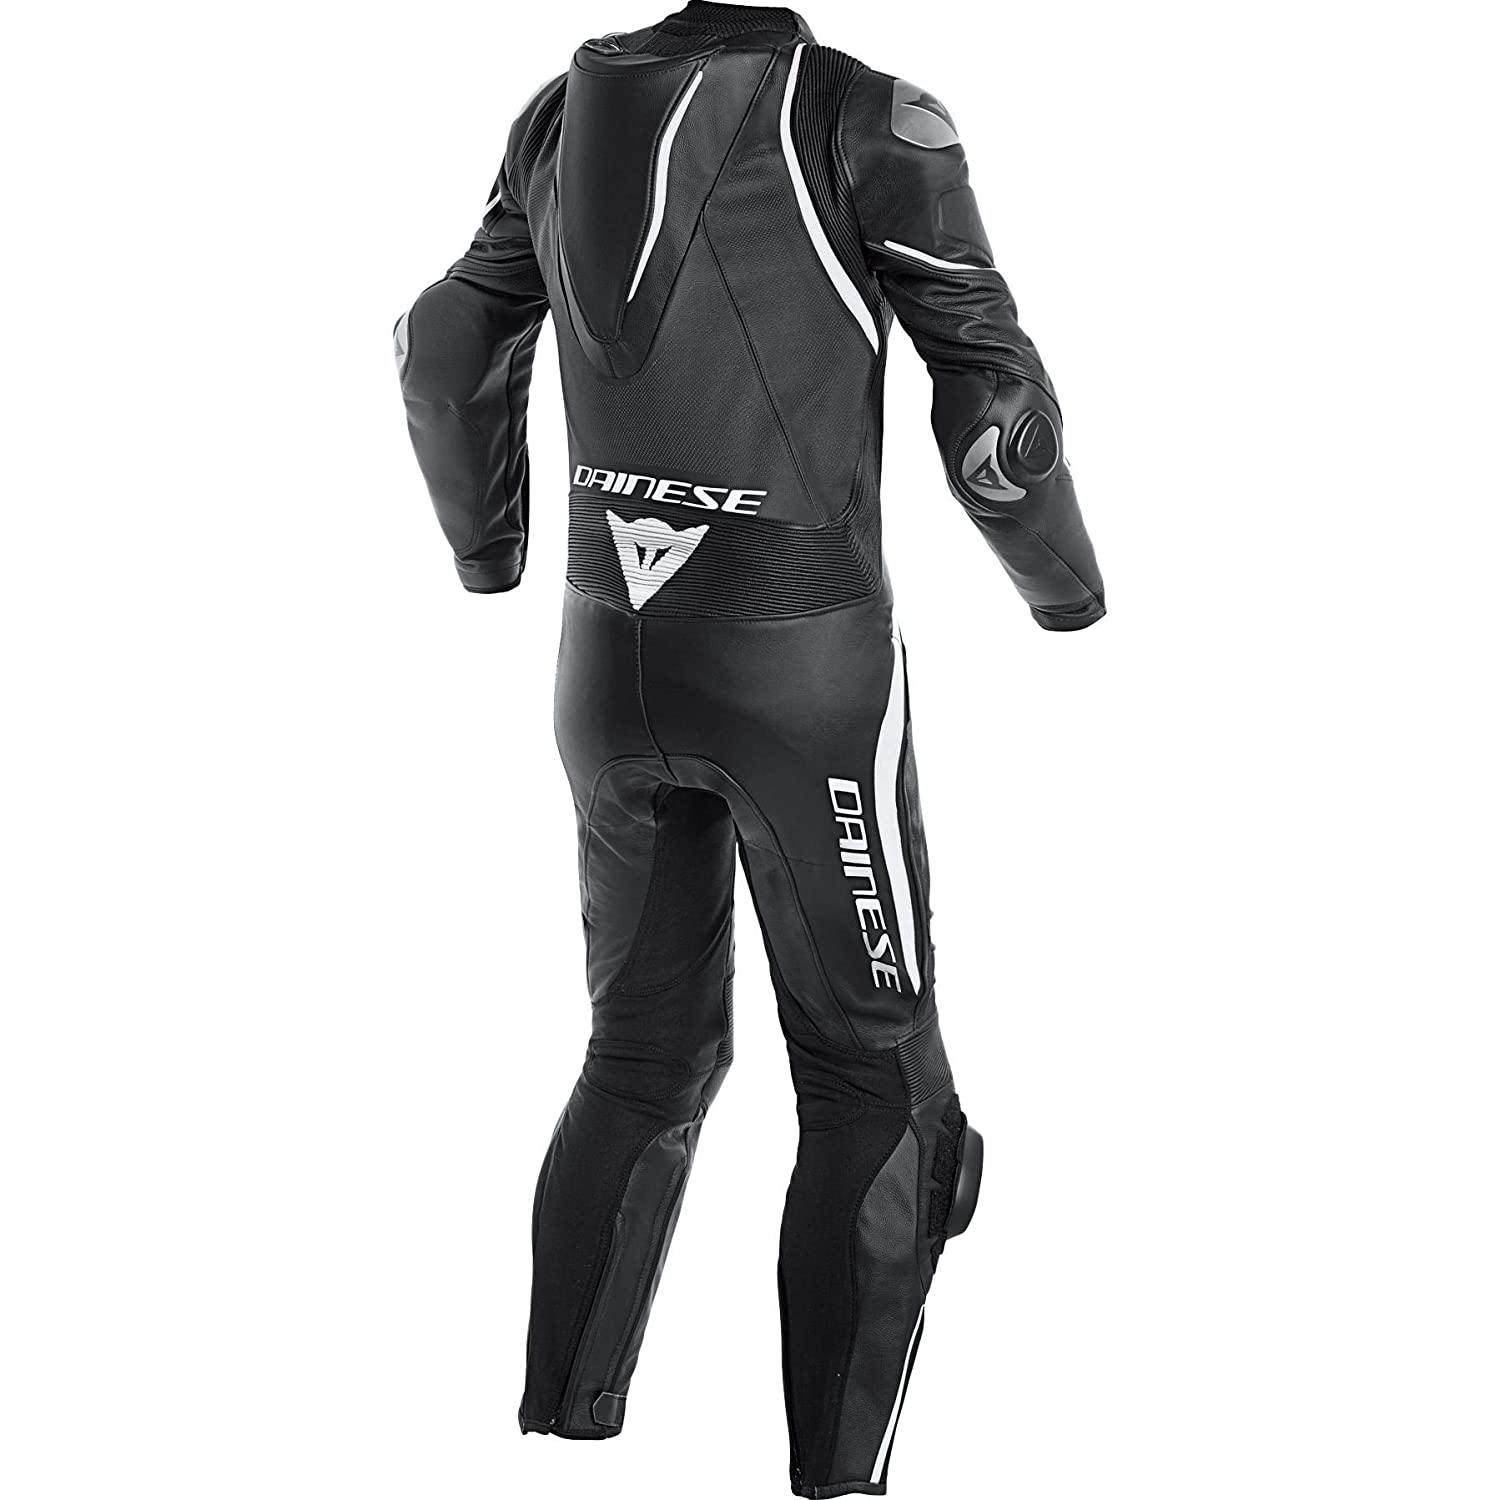 Dainese Laguna Seca 4 Perforated Leather One-Piece Suit (52) (Black/Black/Fluorescent Red)